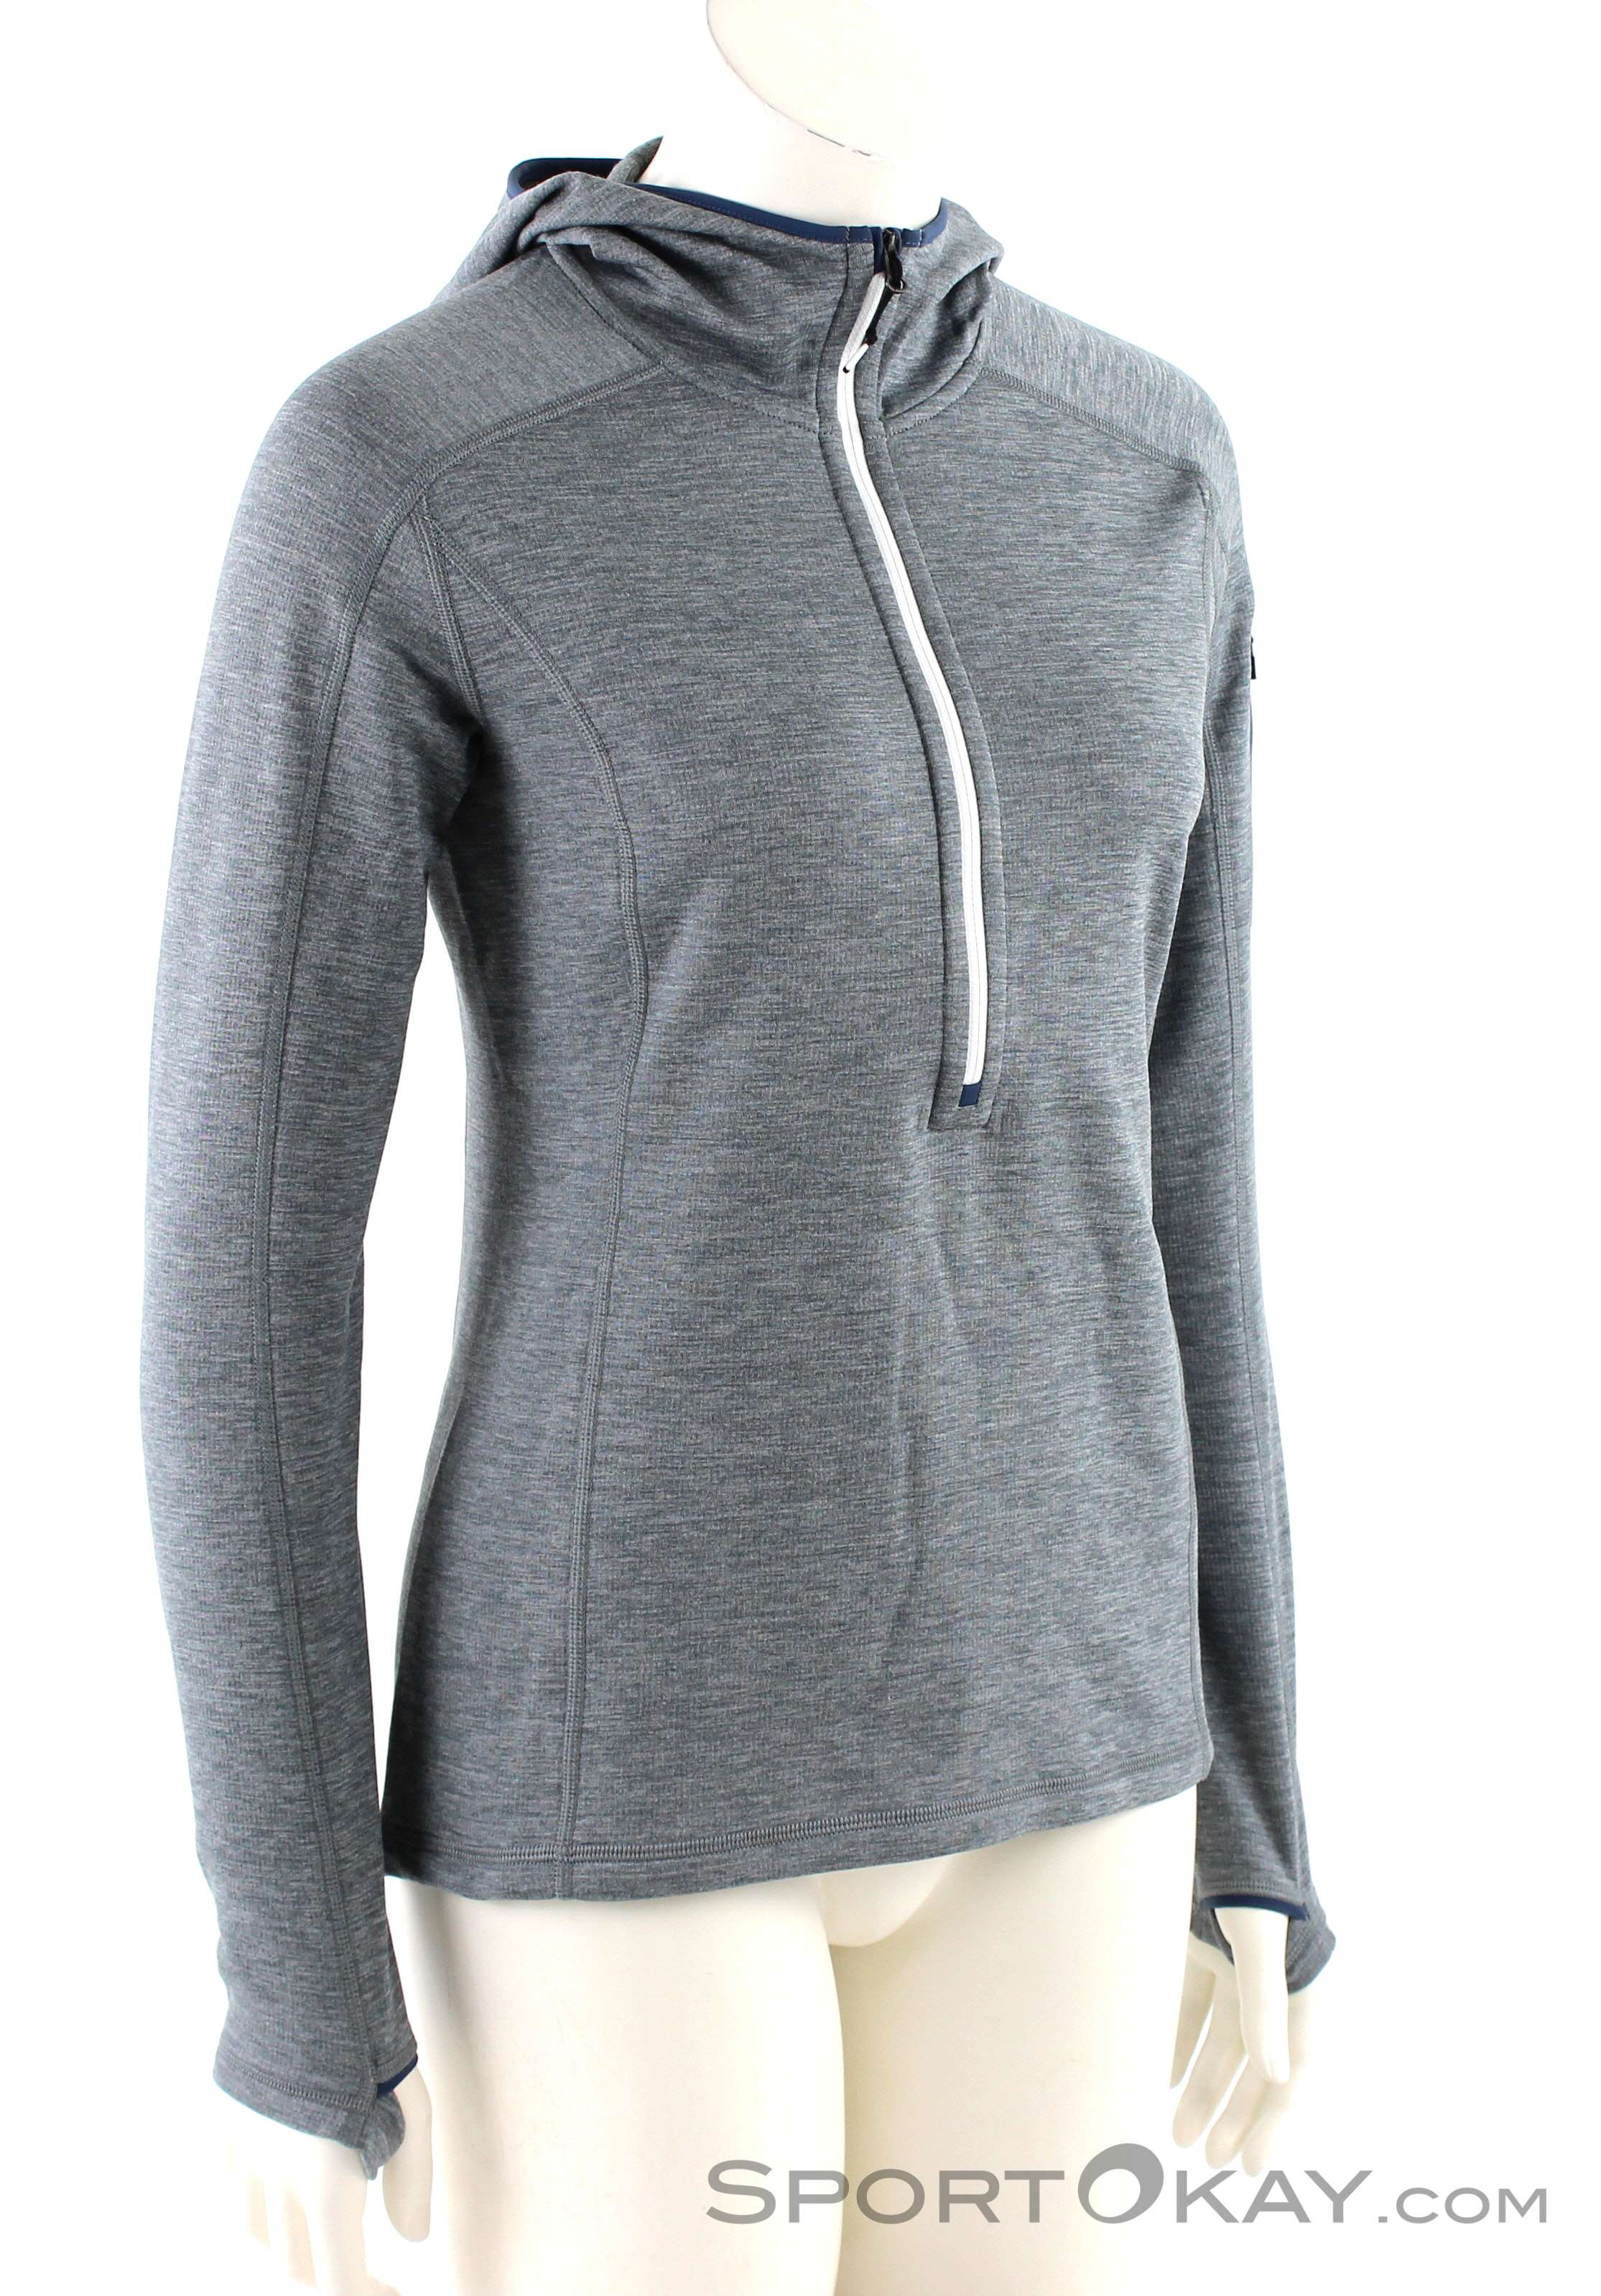 Ortovox Ortovox Fleece Light Melange Zneck Womens Fleece Jacket